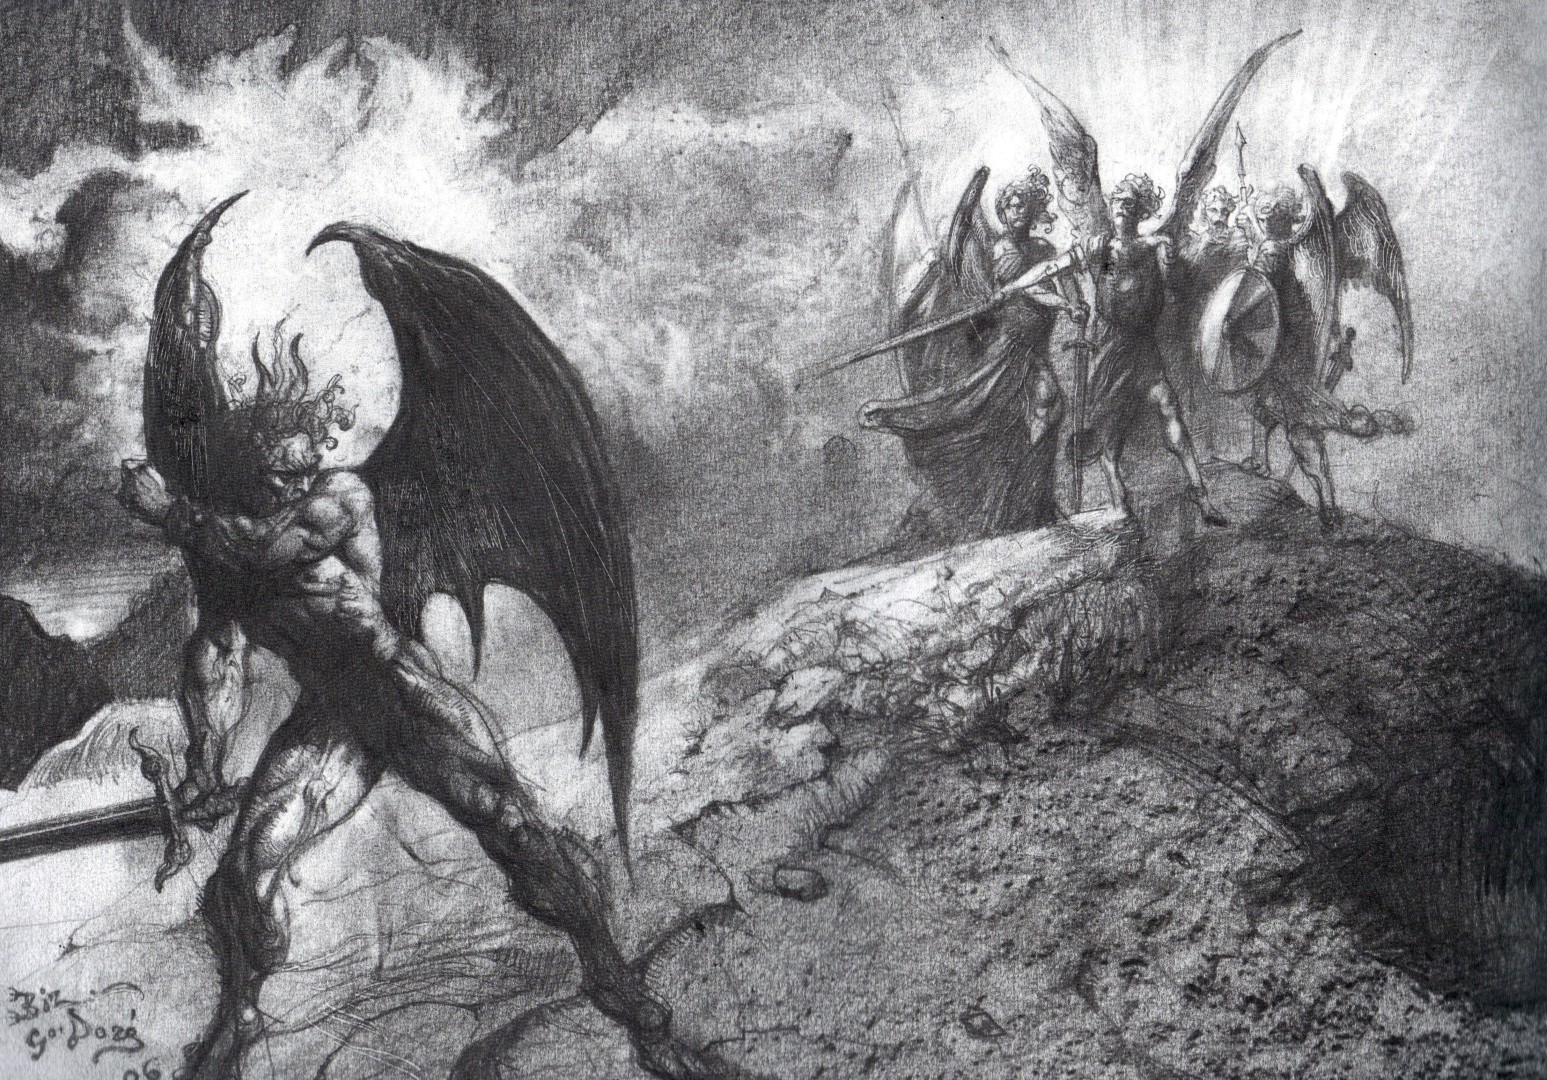 satans heroic aspects in paradise lost by john milton